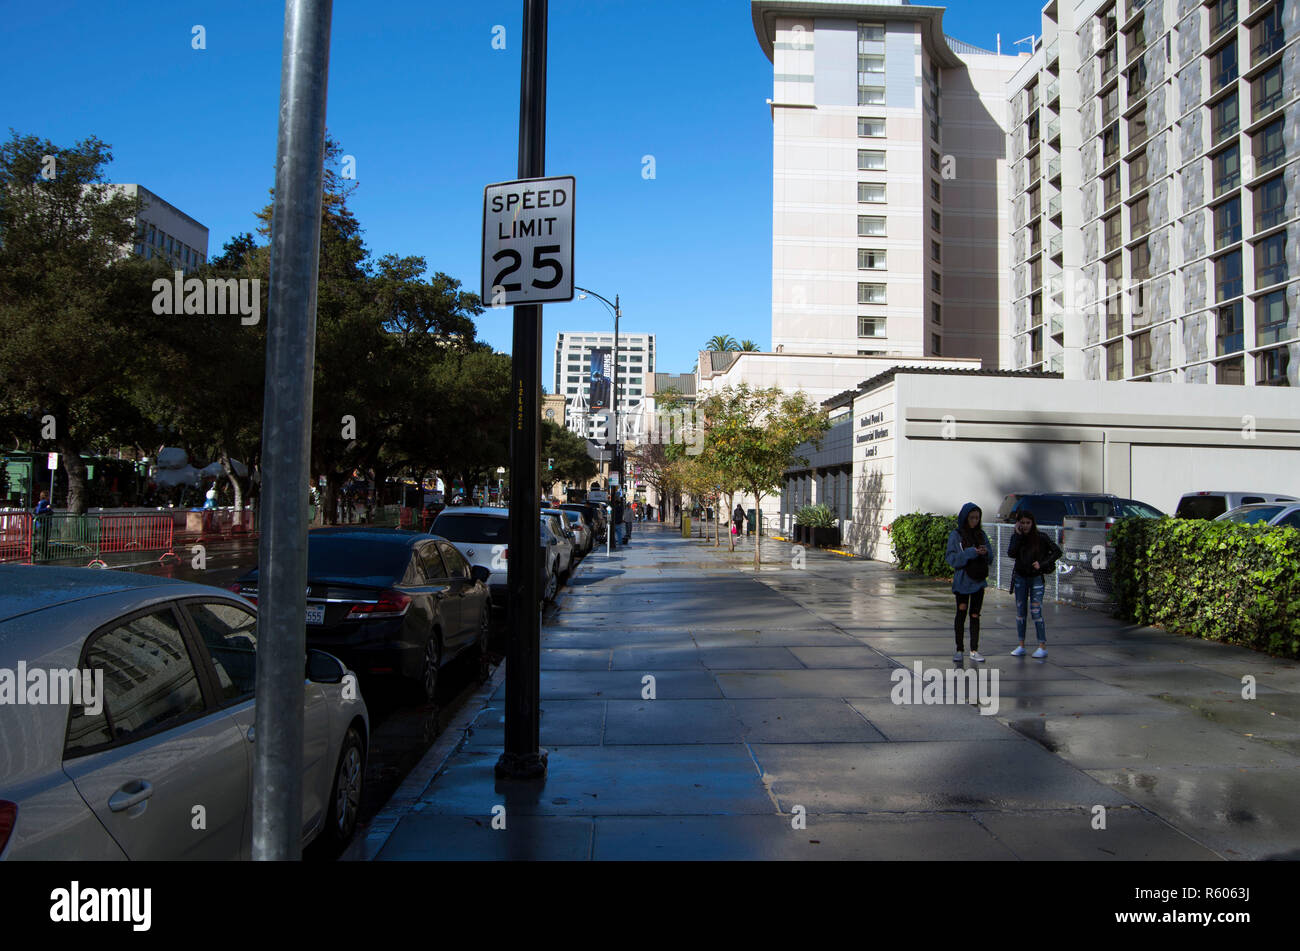 Speed limit signs are found everywhere in San Jose, CA. - Stock Image